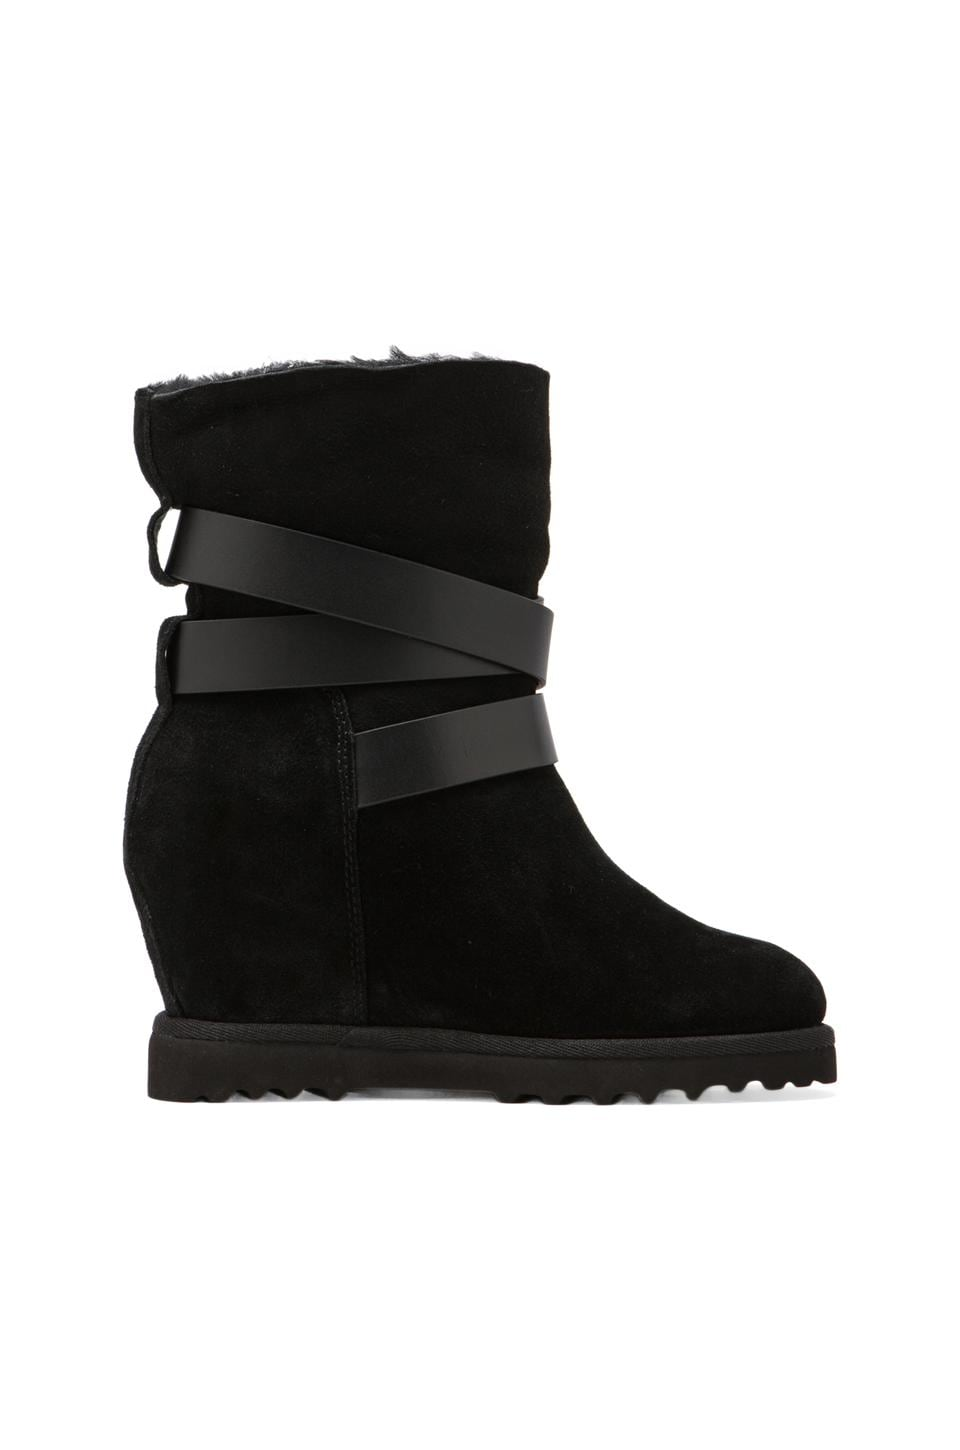 Ash Yes Boot in Black